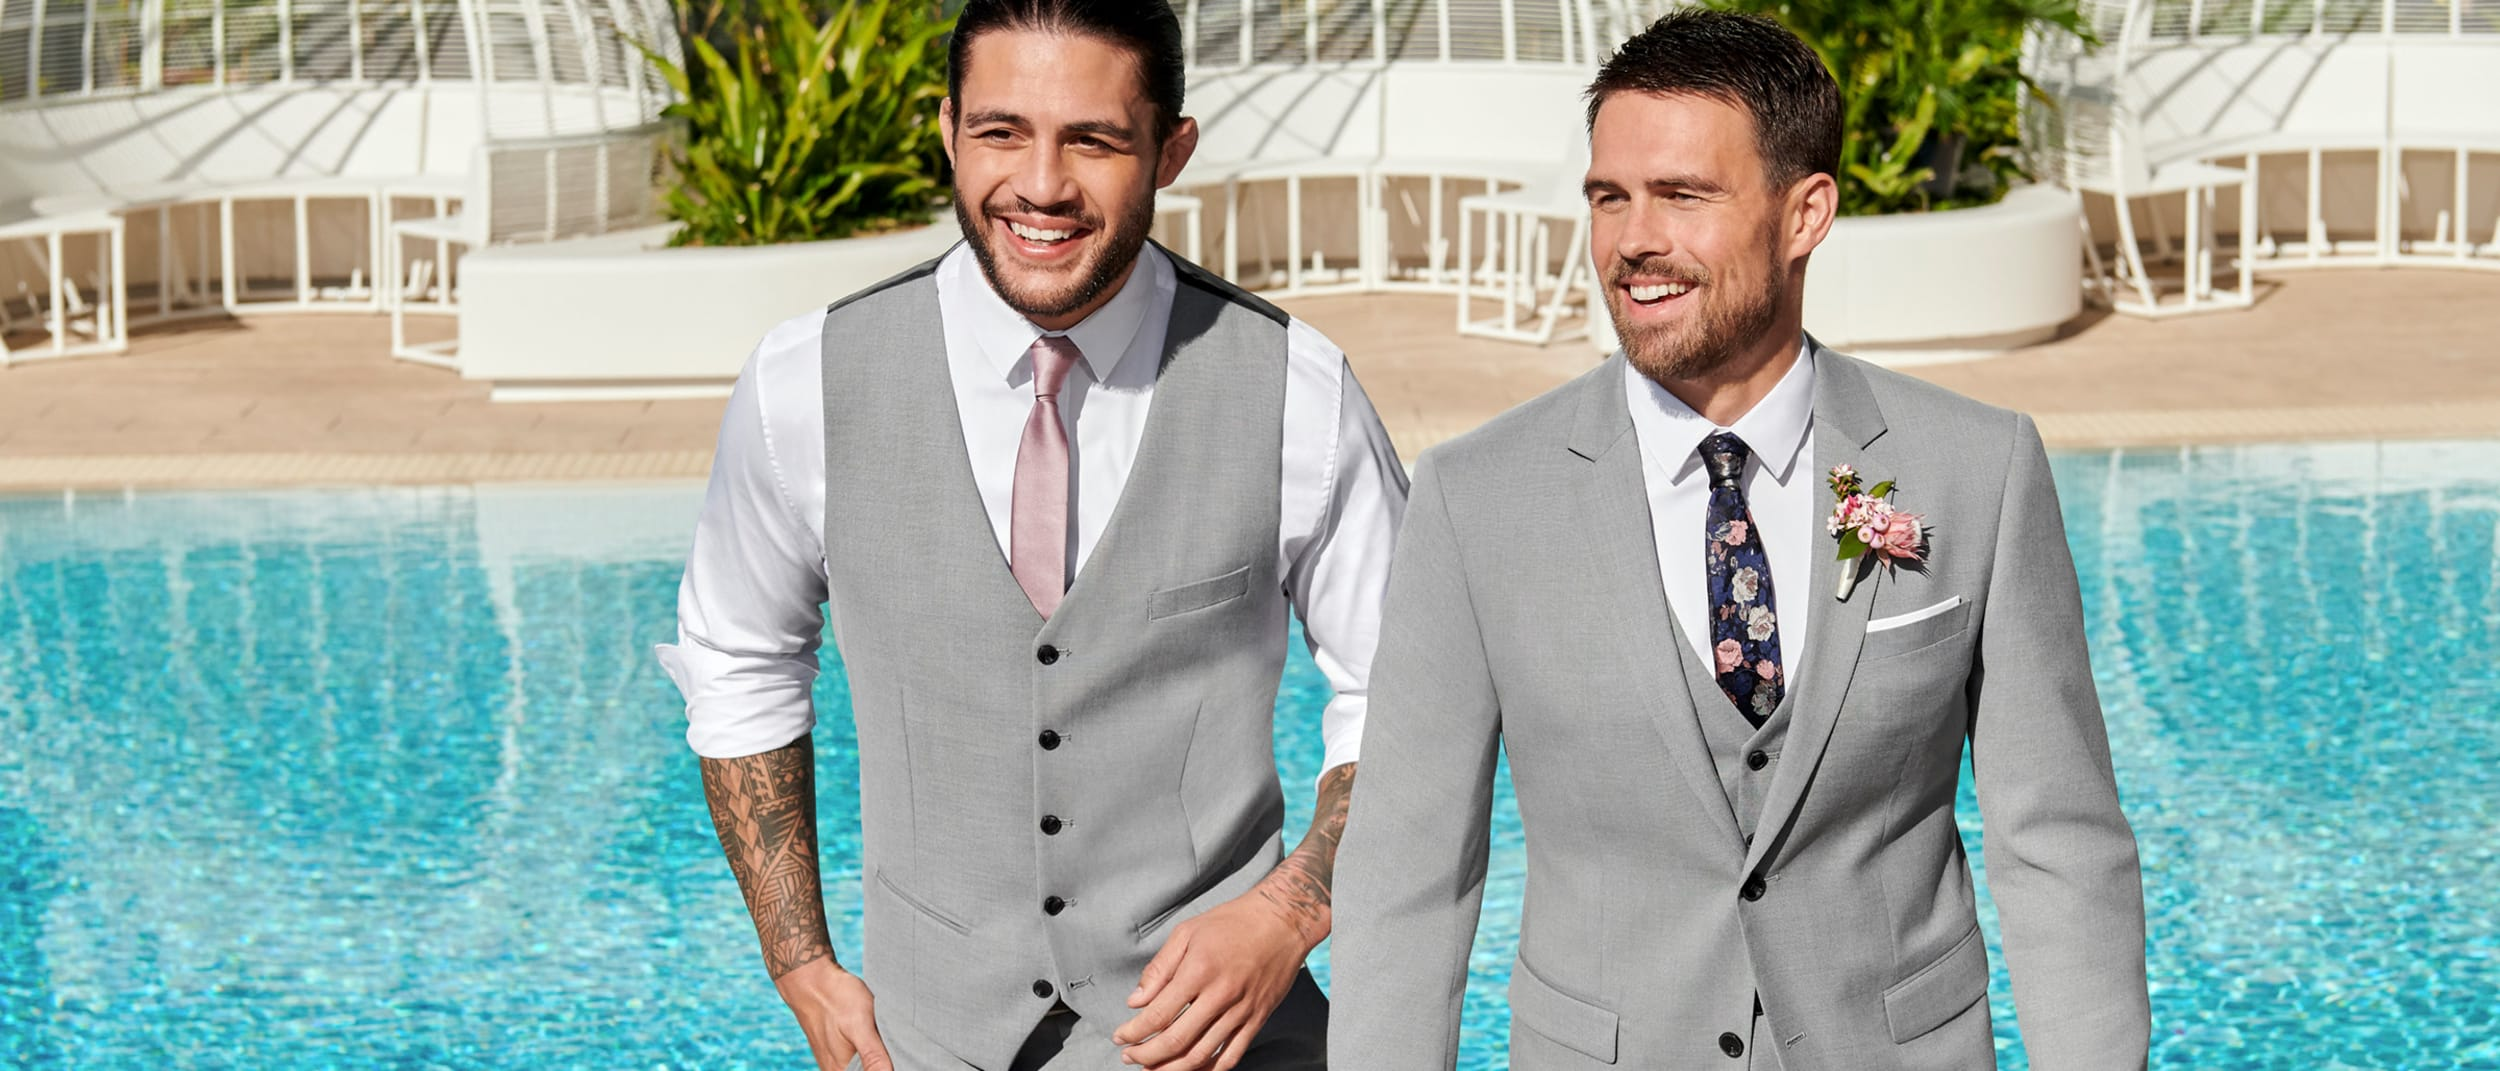 Tarocash: All suits now $249.99